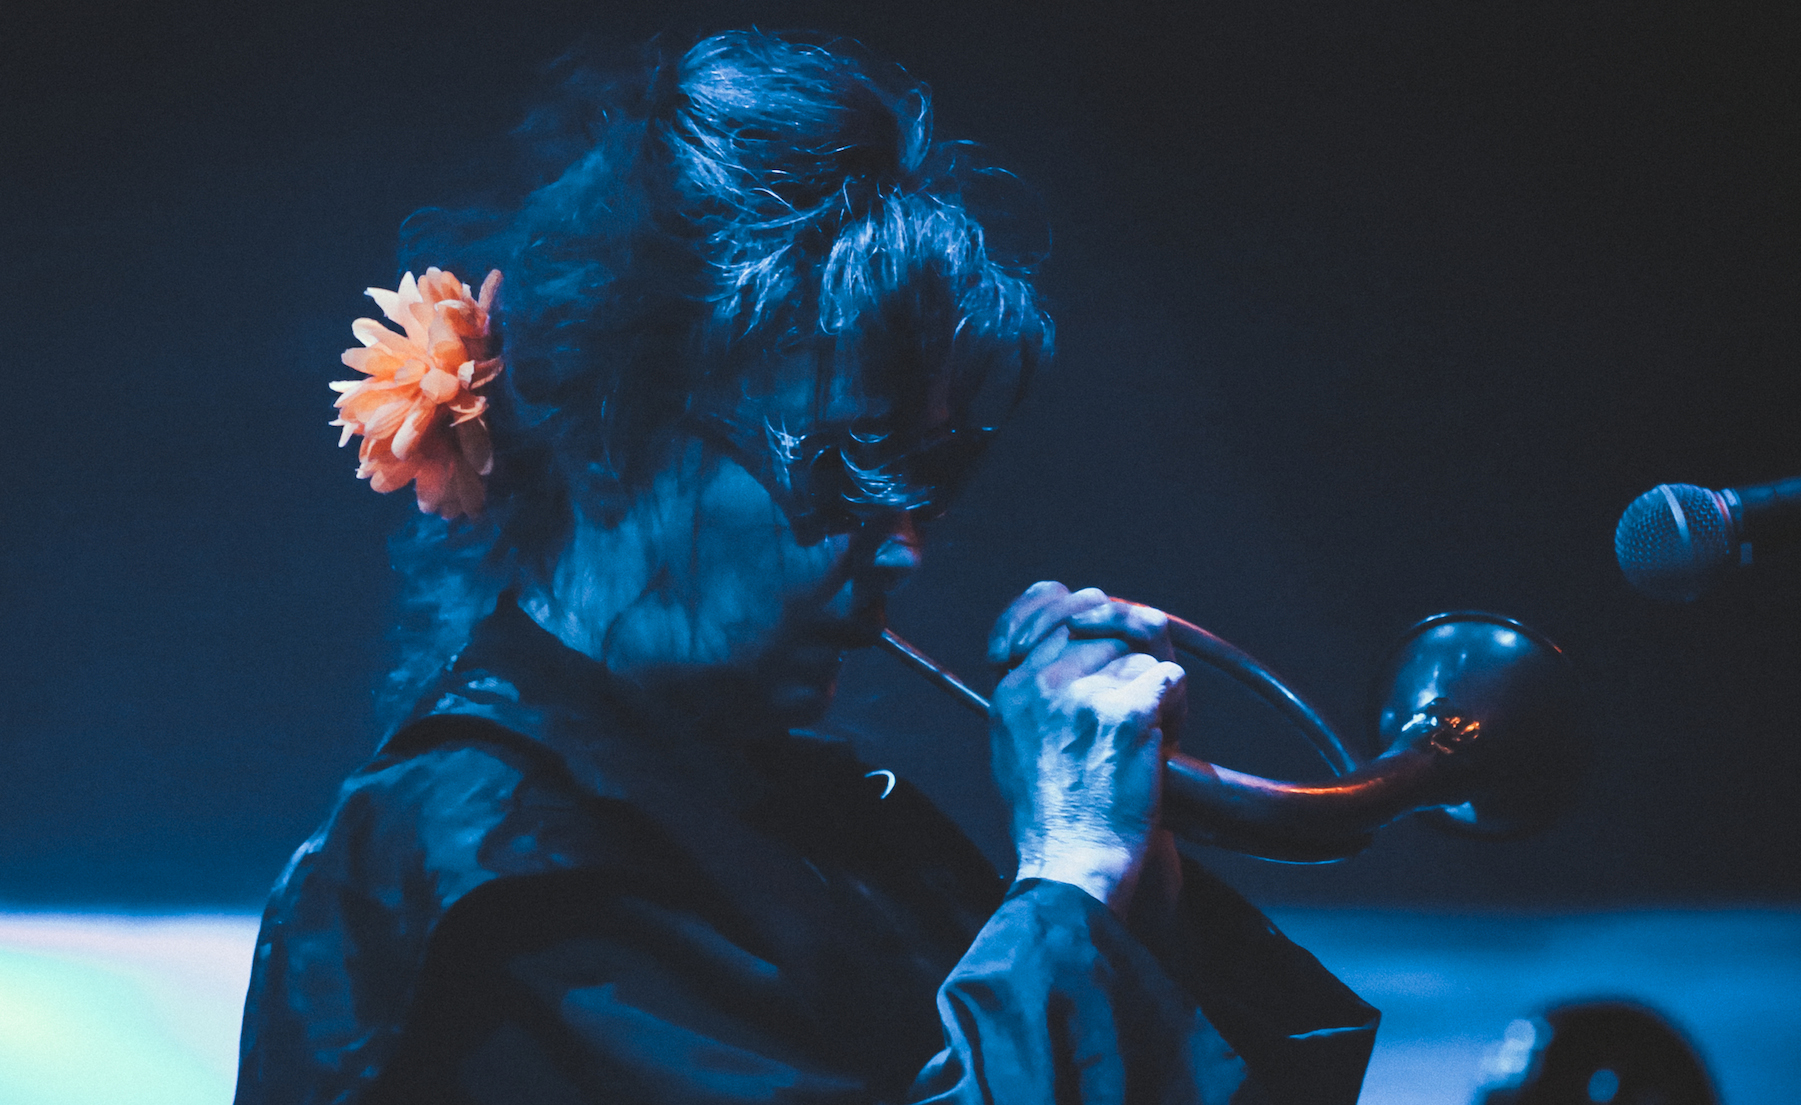 Read: A side-by-side interview with Perfume Genius & Mary Margaret O'Hara, backstage at LGW17